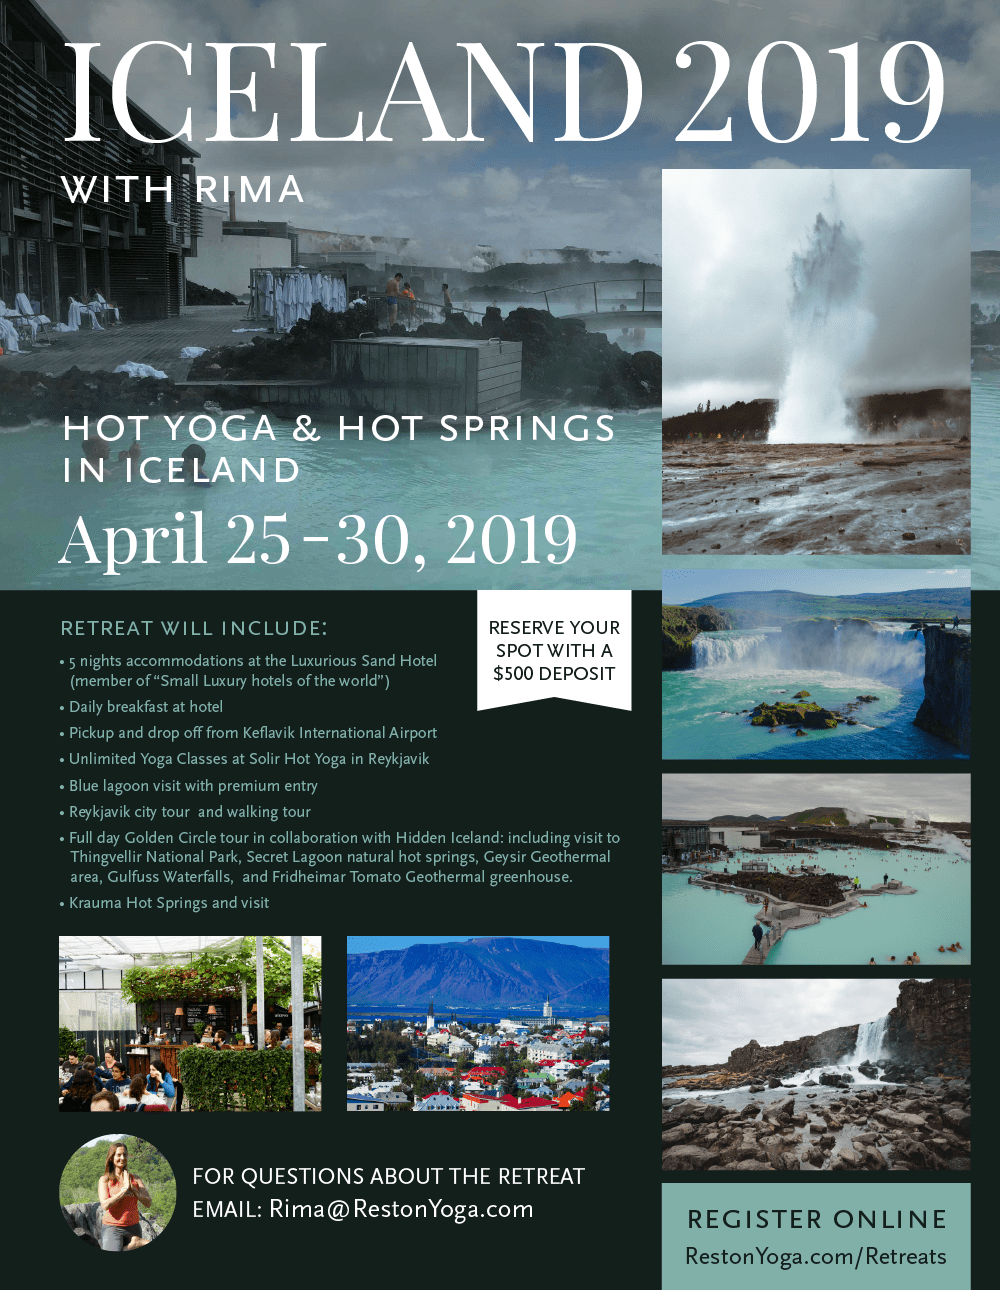 Hot Yoga & Hot Springs In Iceland